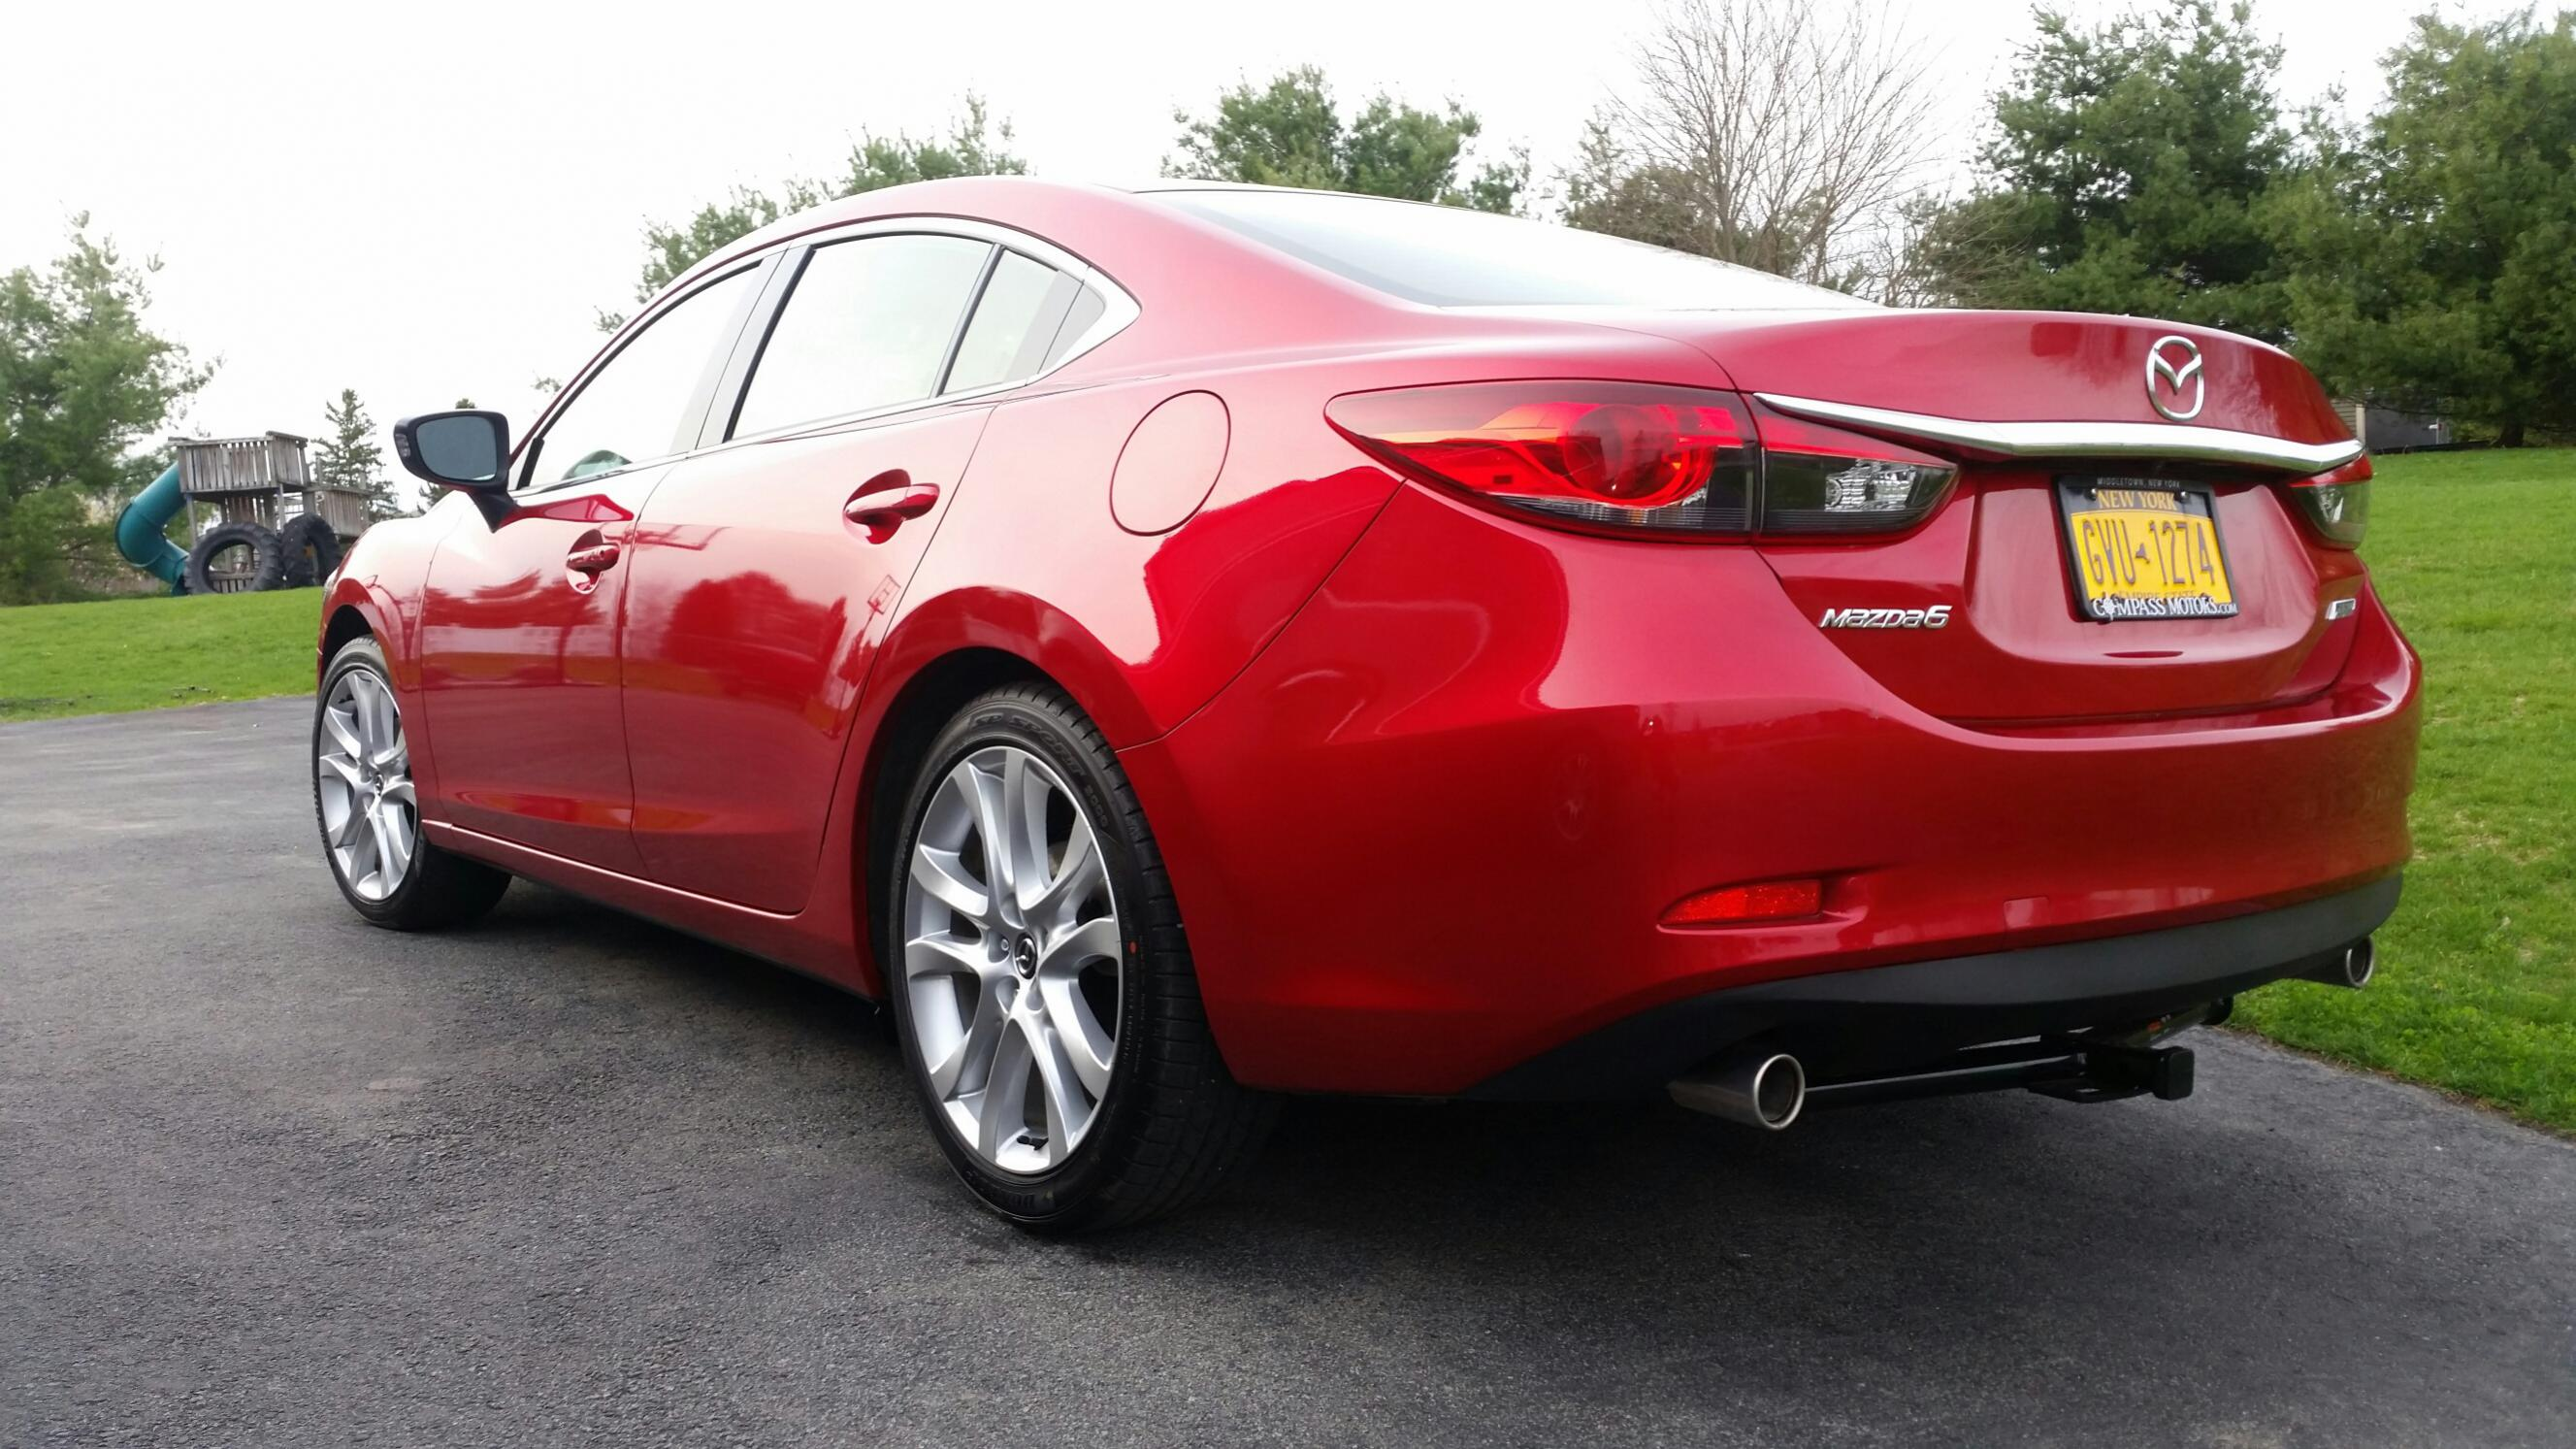 cant find towing capacity  6M  Mazda 6 Forums  Mazda 6 Forum